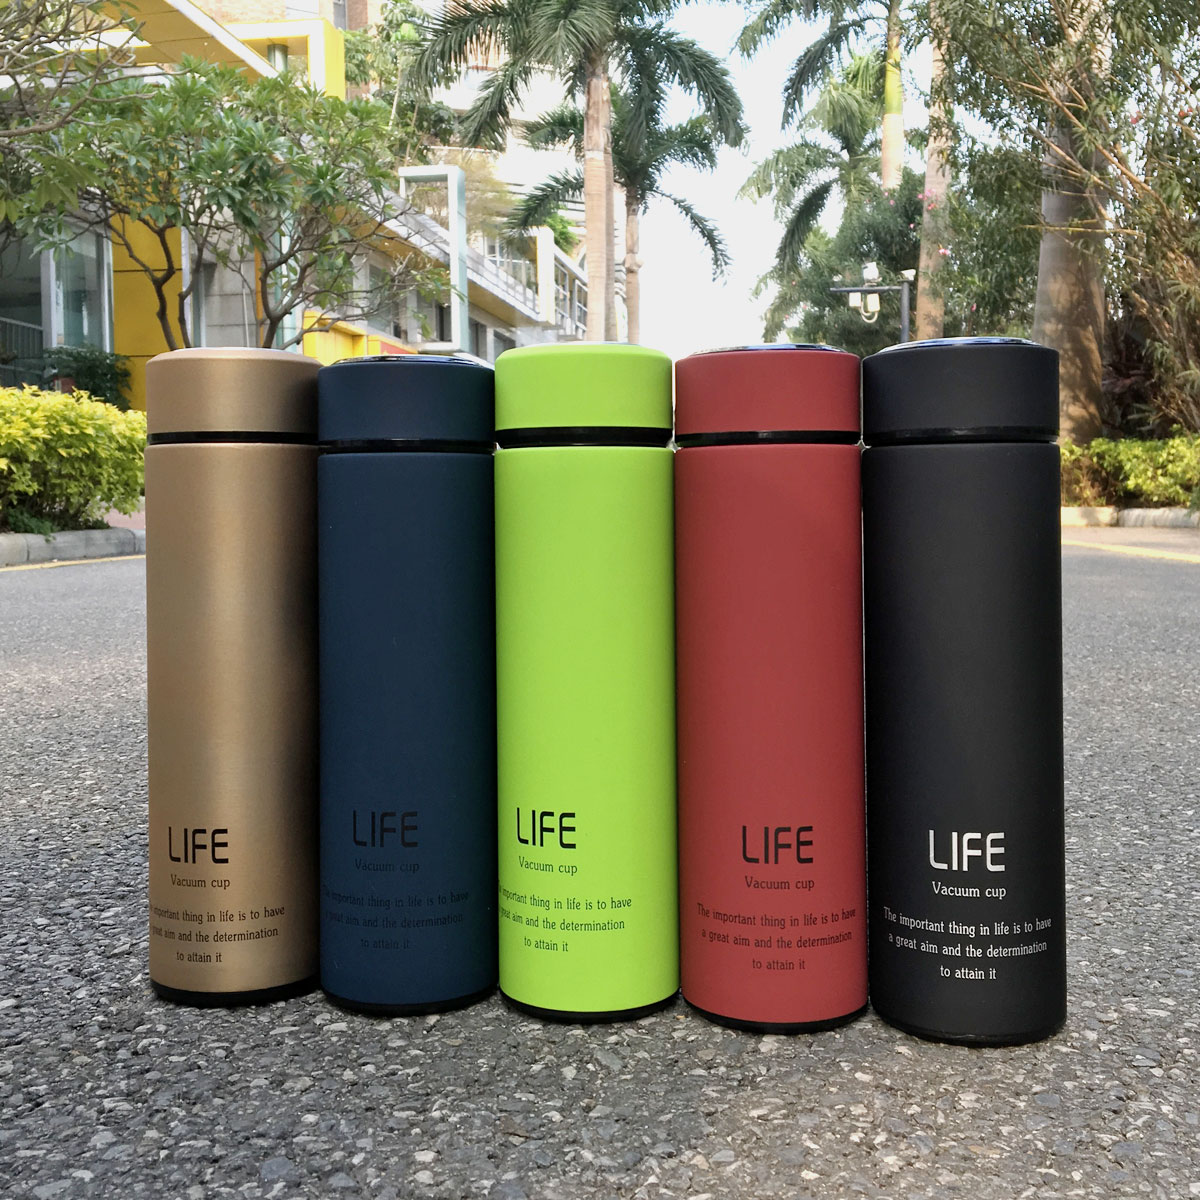 500ML/18Oz Portable Hot Stainless Steel Vacuum-Insulated Thermos leak-proof Insulated Container Coffee Tea Water Beverage Bottle Flasks Travel Mug 5 Colors